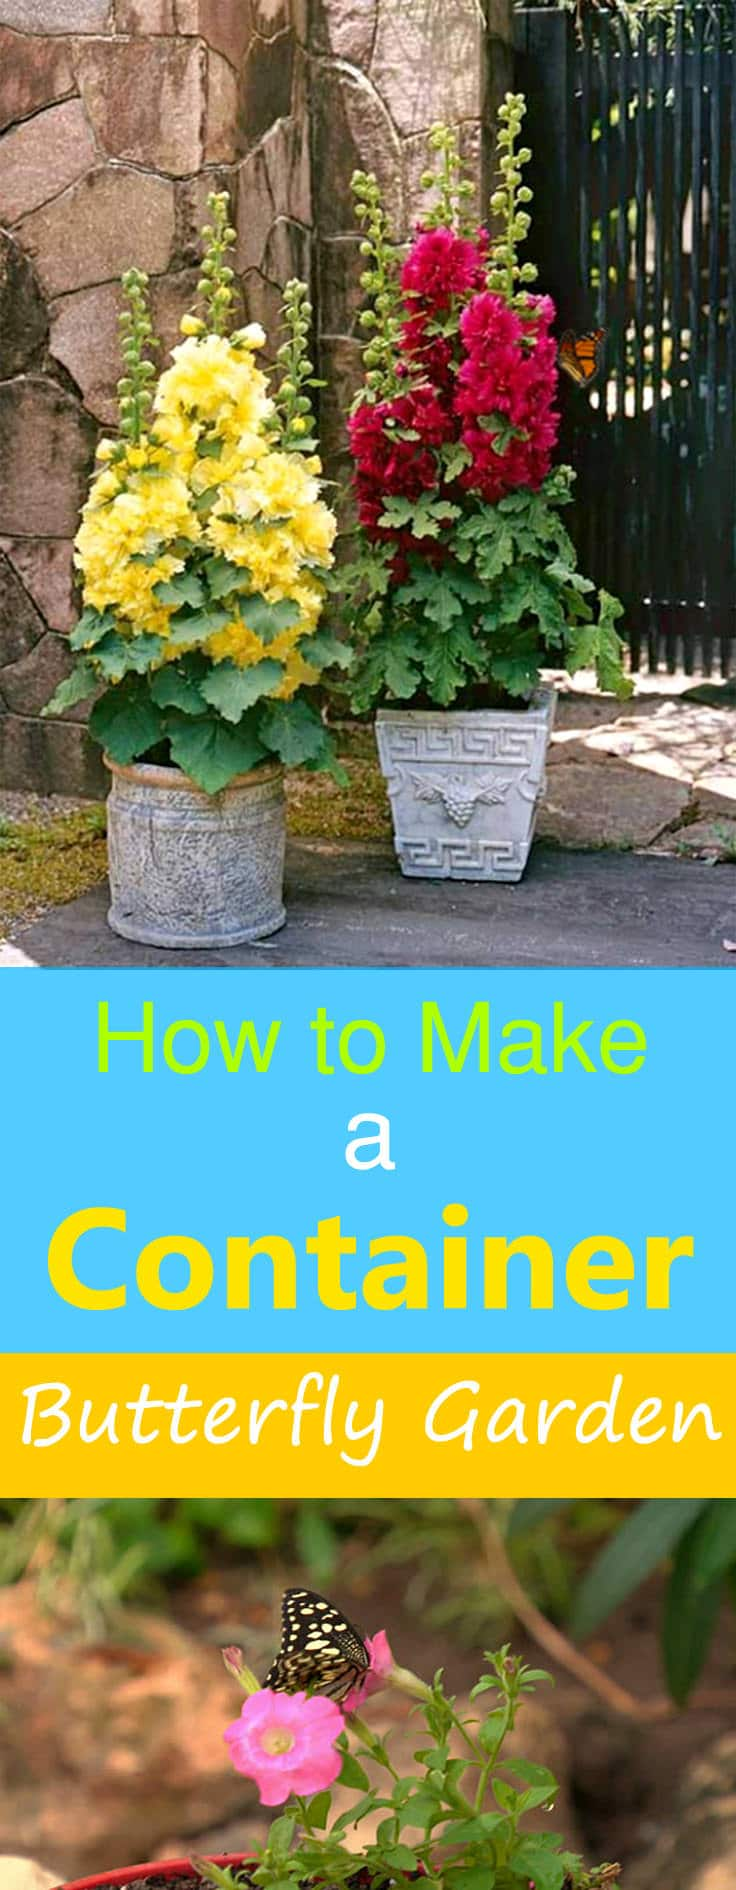 Even If Youu0027re Short Of Space, Making A Butterfly Garden In Containers Is